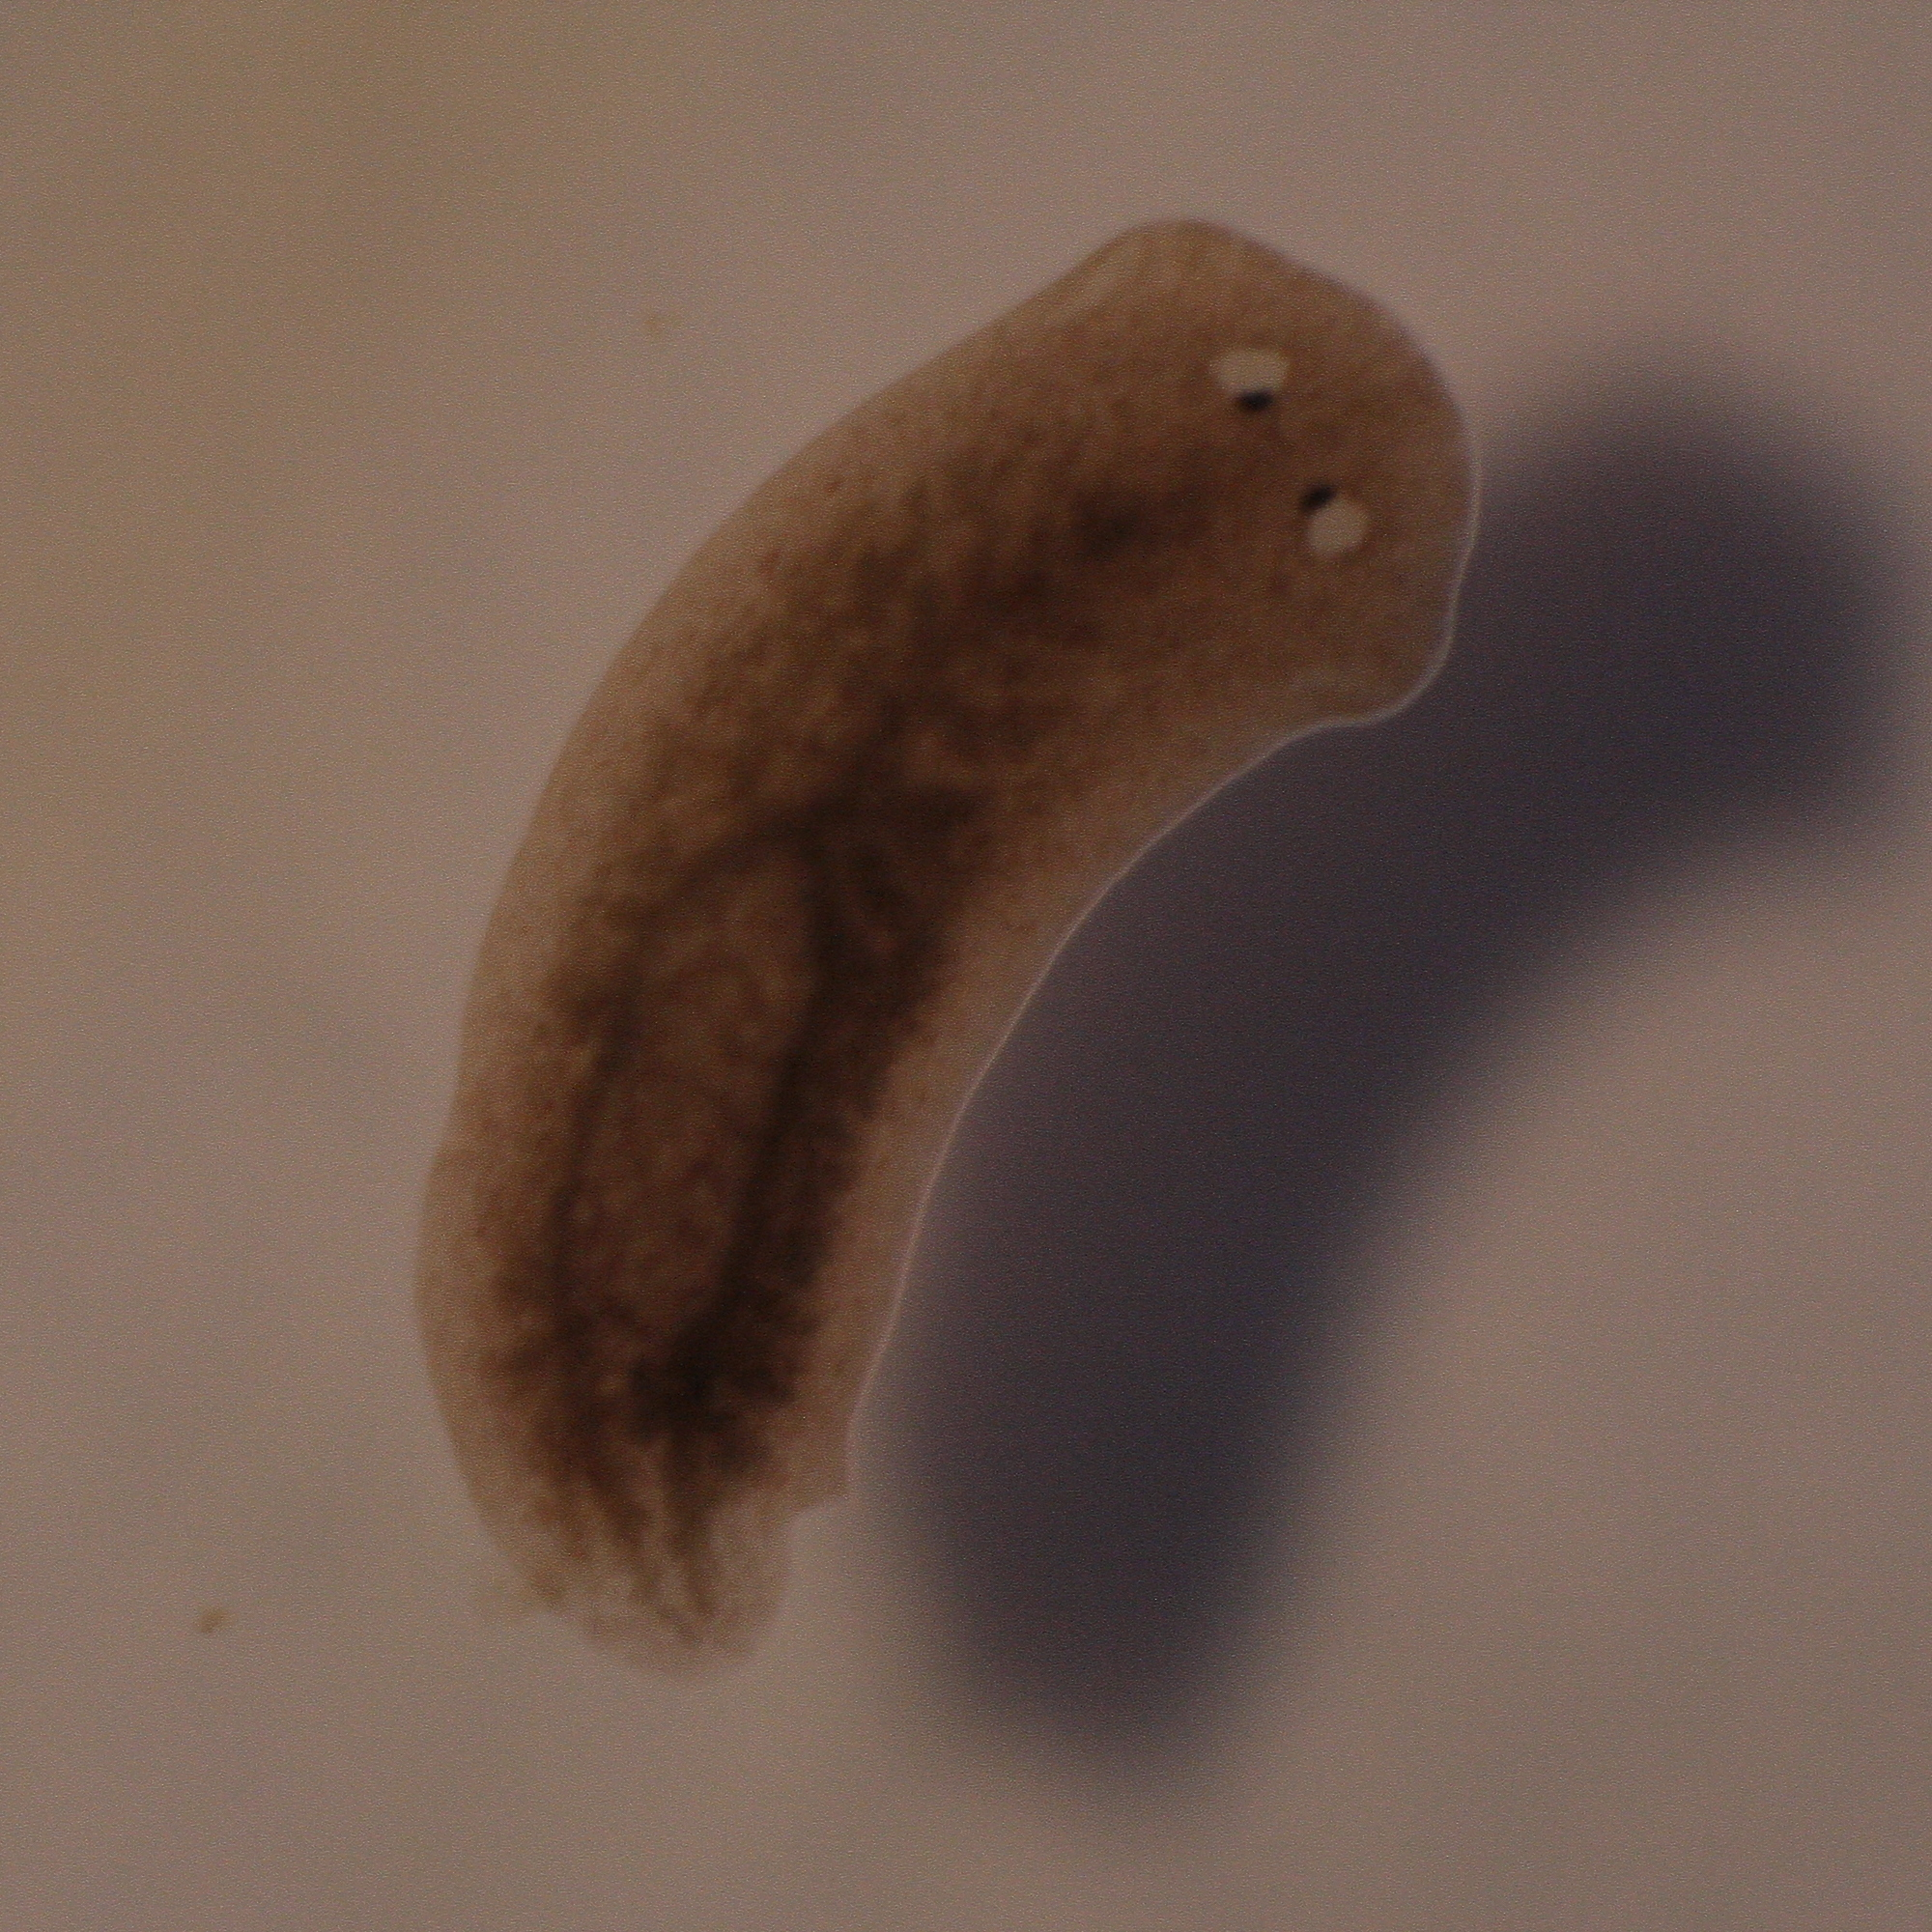 Unspecified planarian